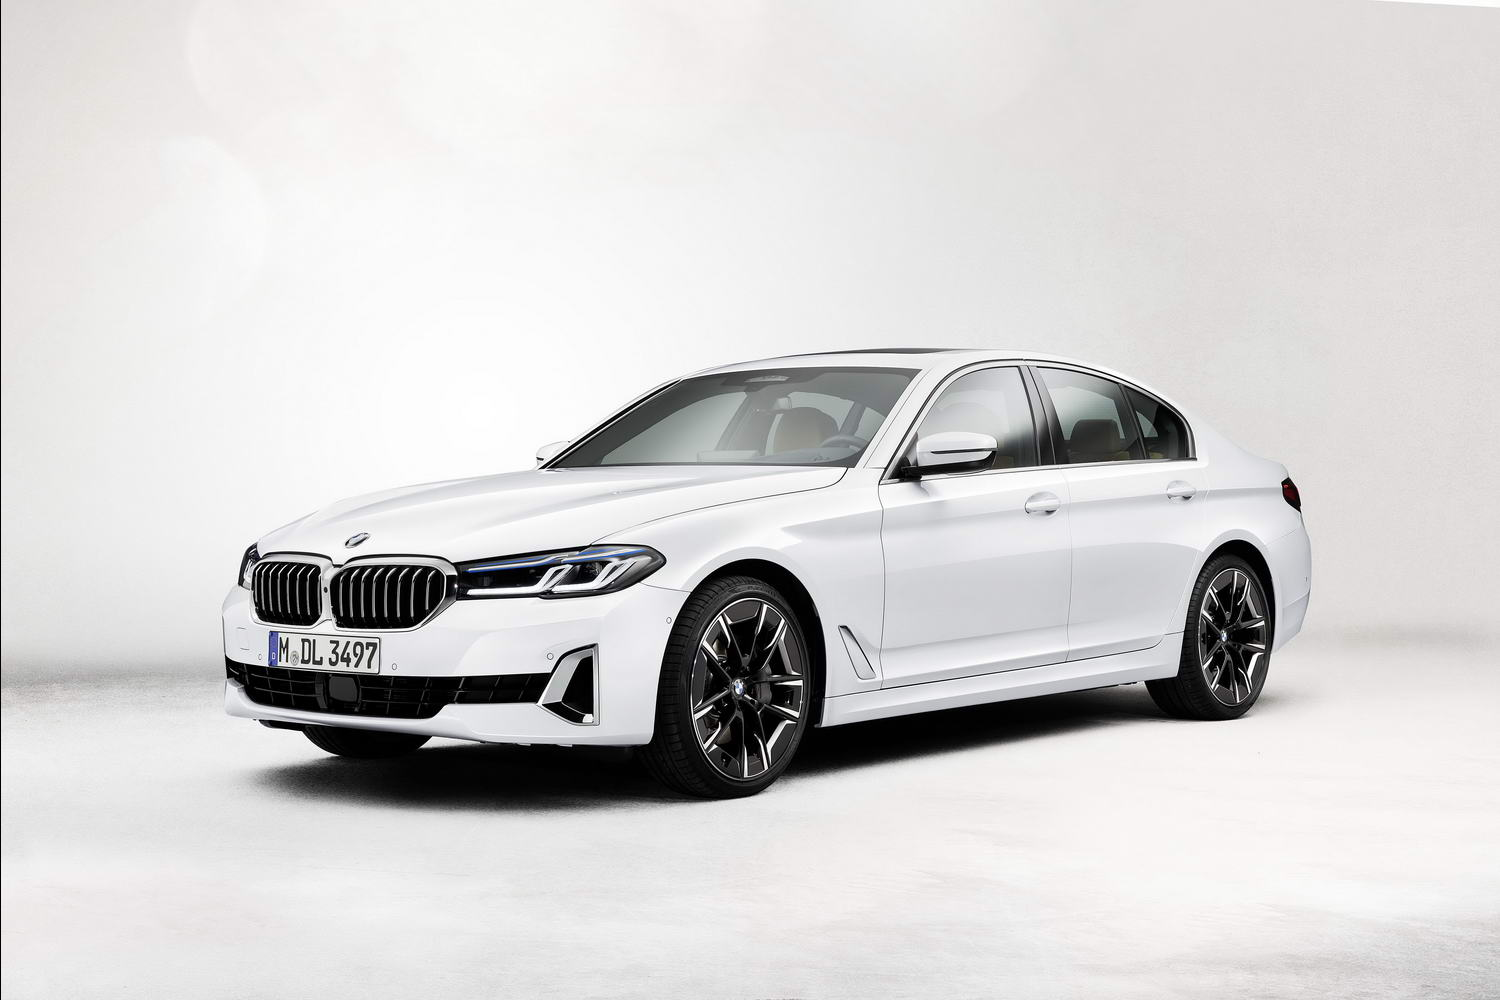 Car News | BMW 540i Saloon 'LCI' 2021 image gallery | CompleteCar.ie